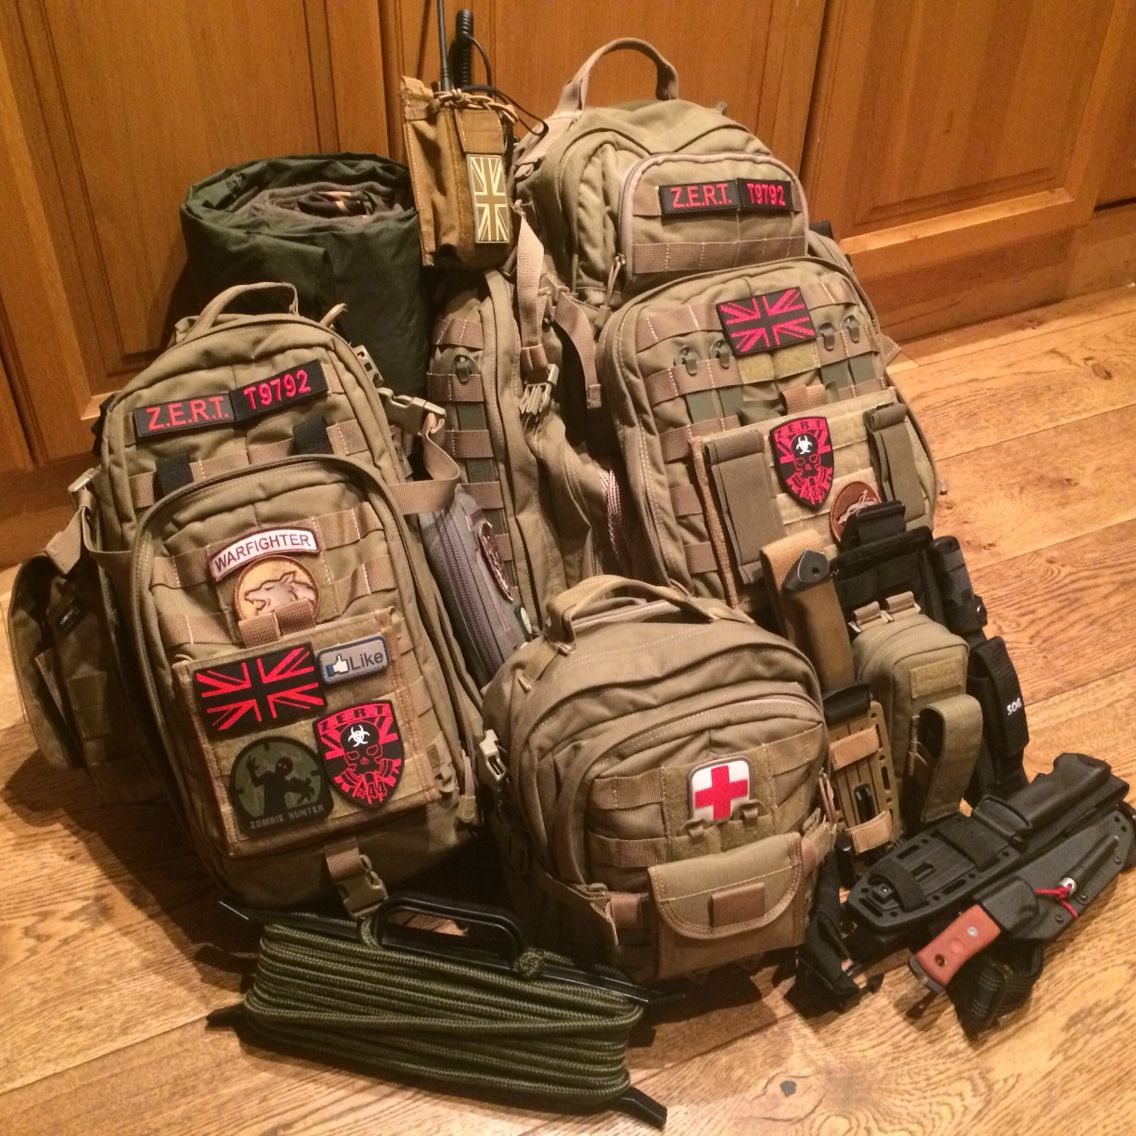 My Complete Bug Out Bag 5 11 Rush 72 Moab 10 6 W Radio